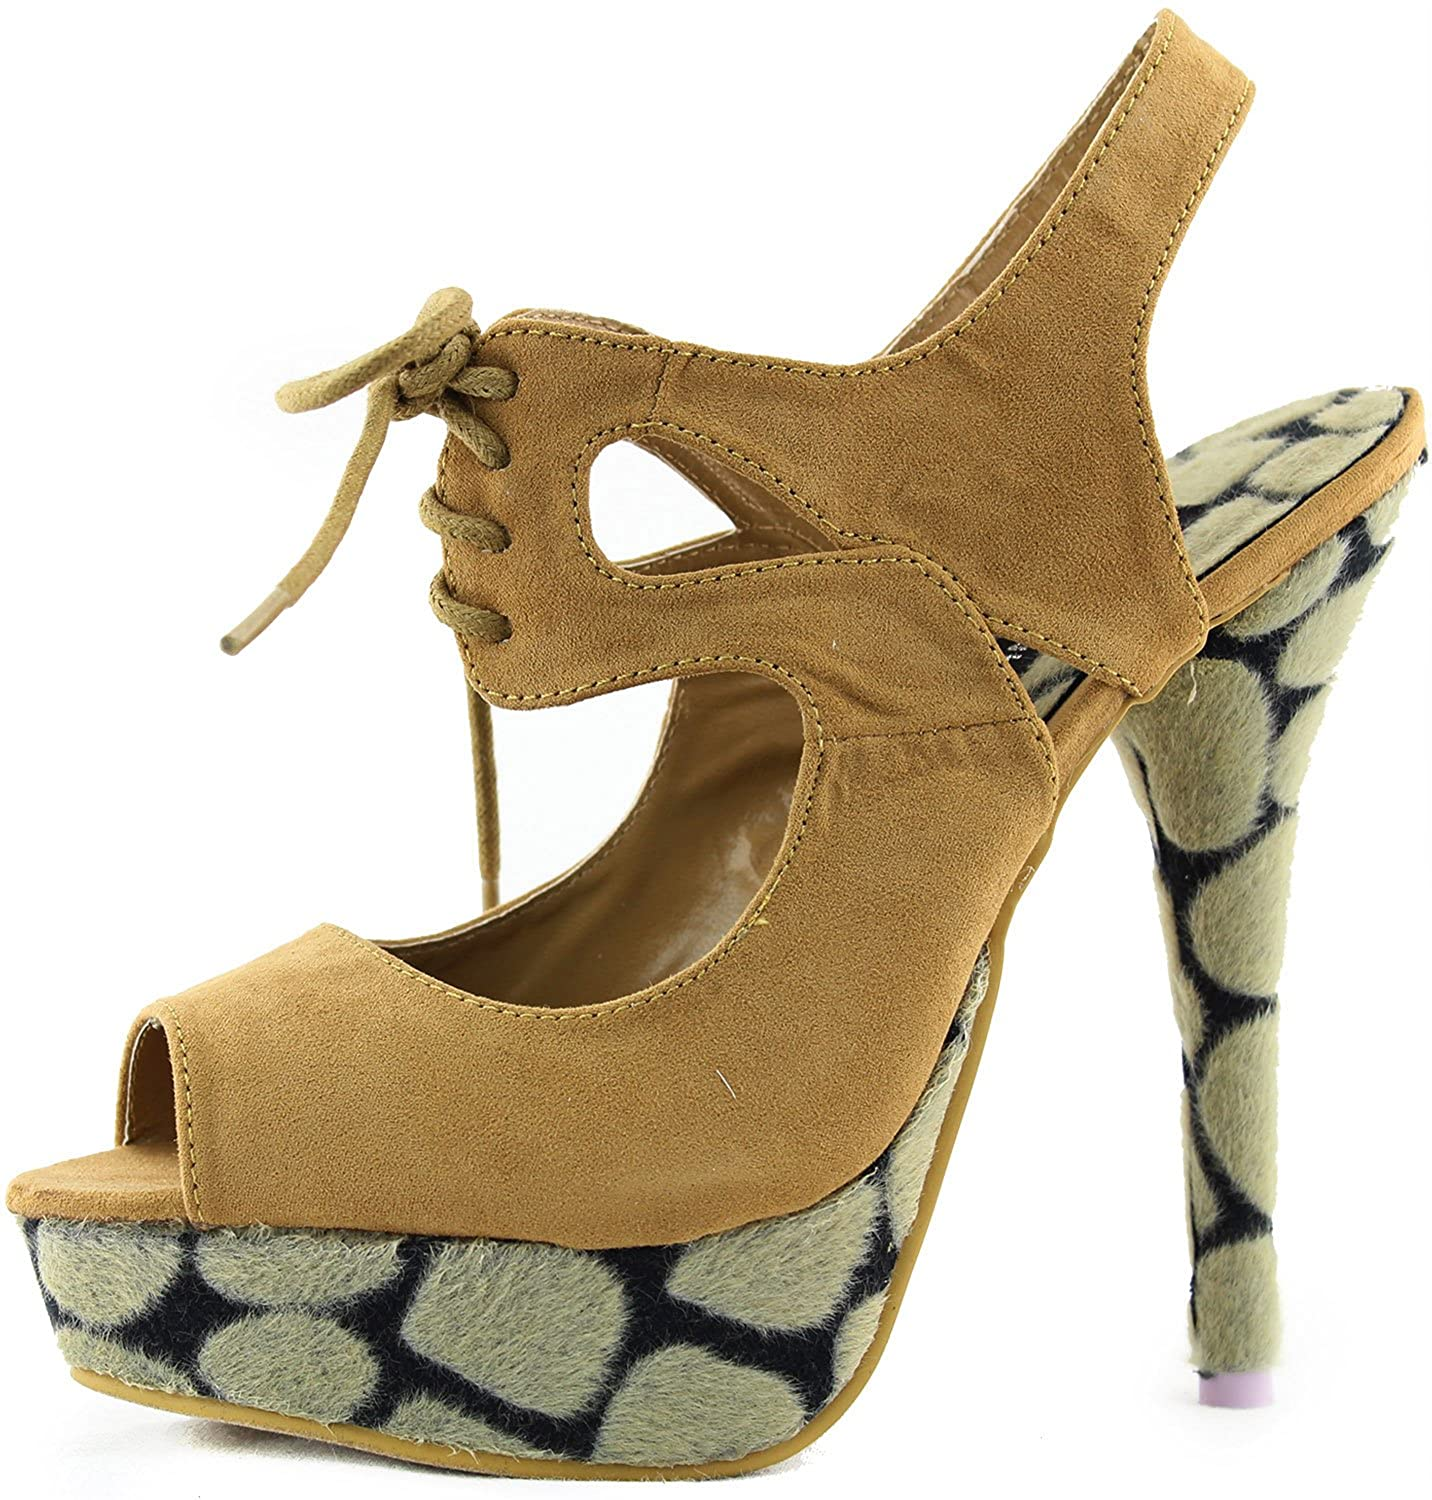 Womens Platform Peep Toe Lace Up Ankle Strap Leopard Animal Printed High Heel Sandals Fashion Shoes